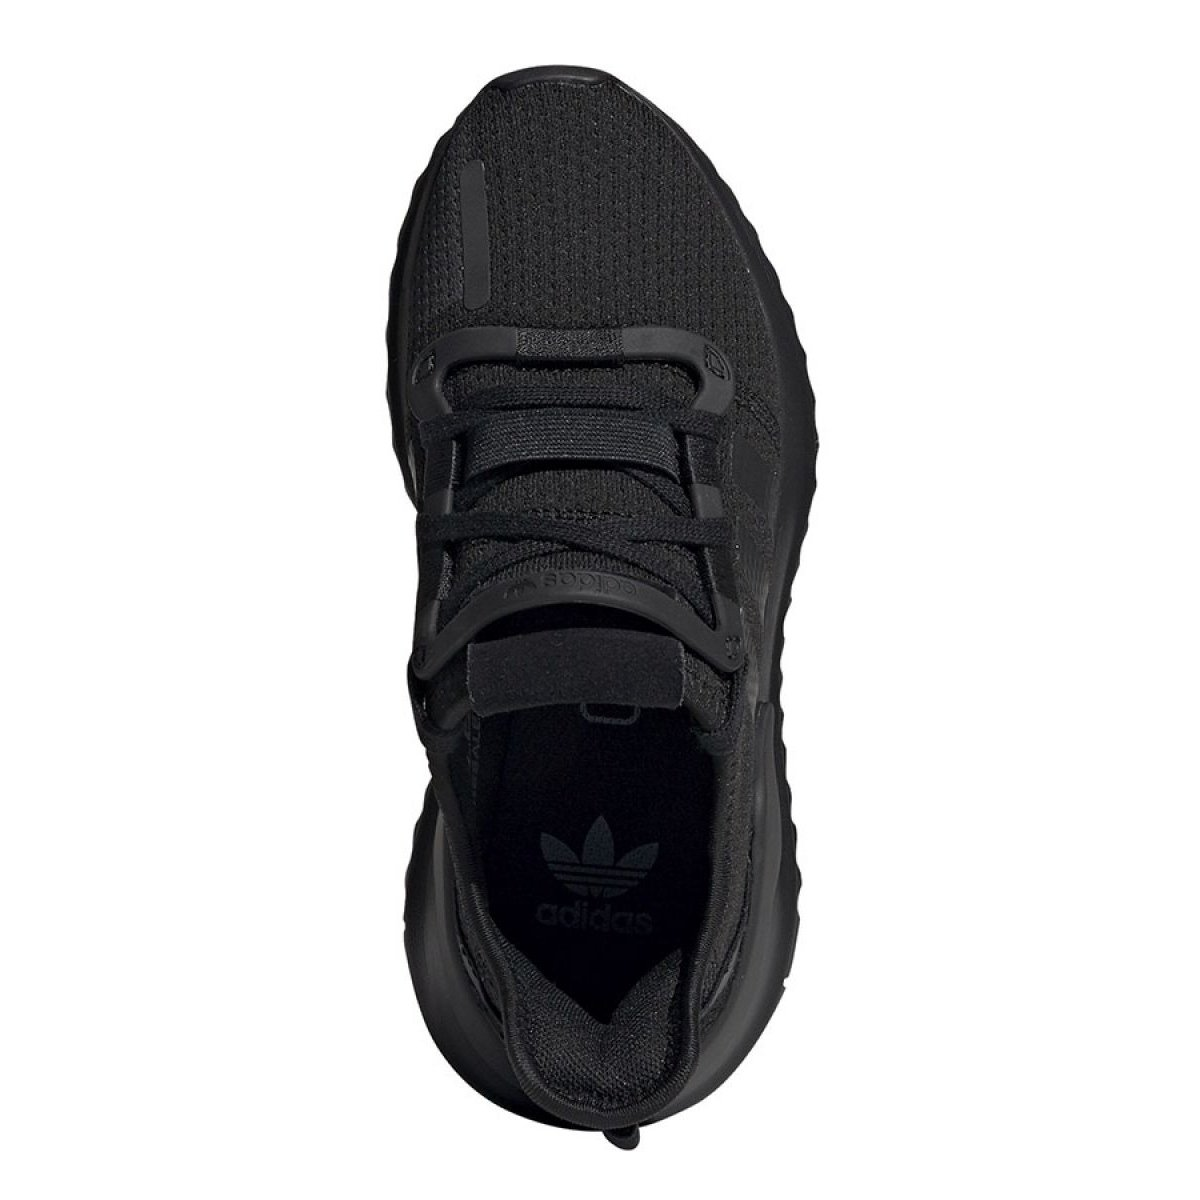 39e58e9a Czarne Buty adidas Originals U_PATH Run Shoes Jr G28107 - ButyModne.pl